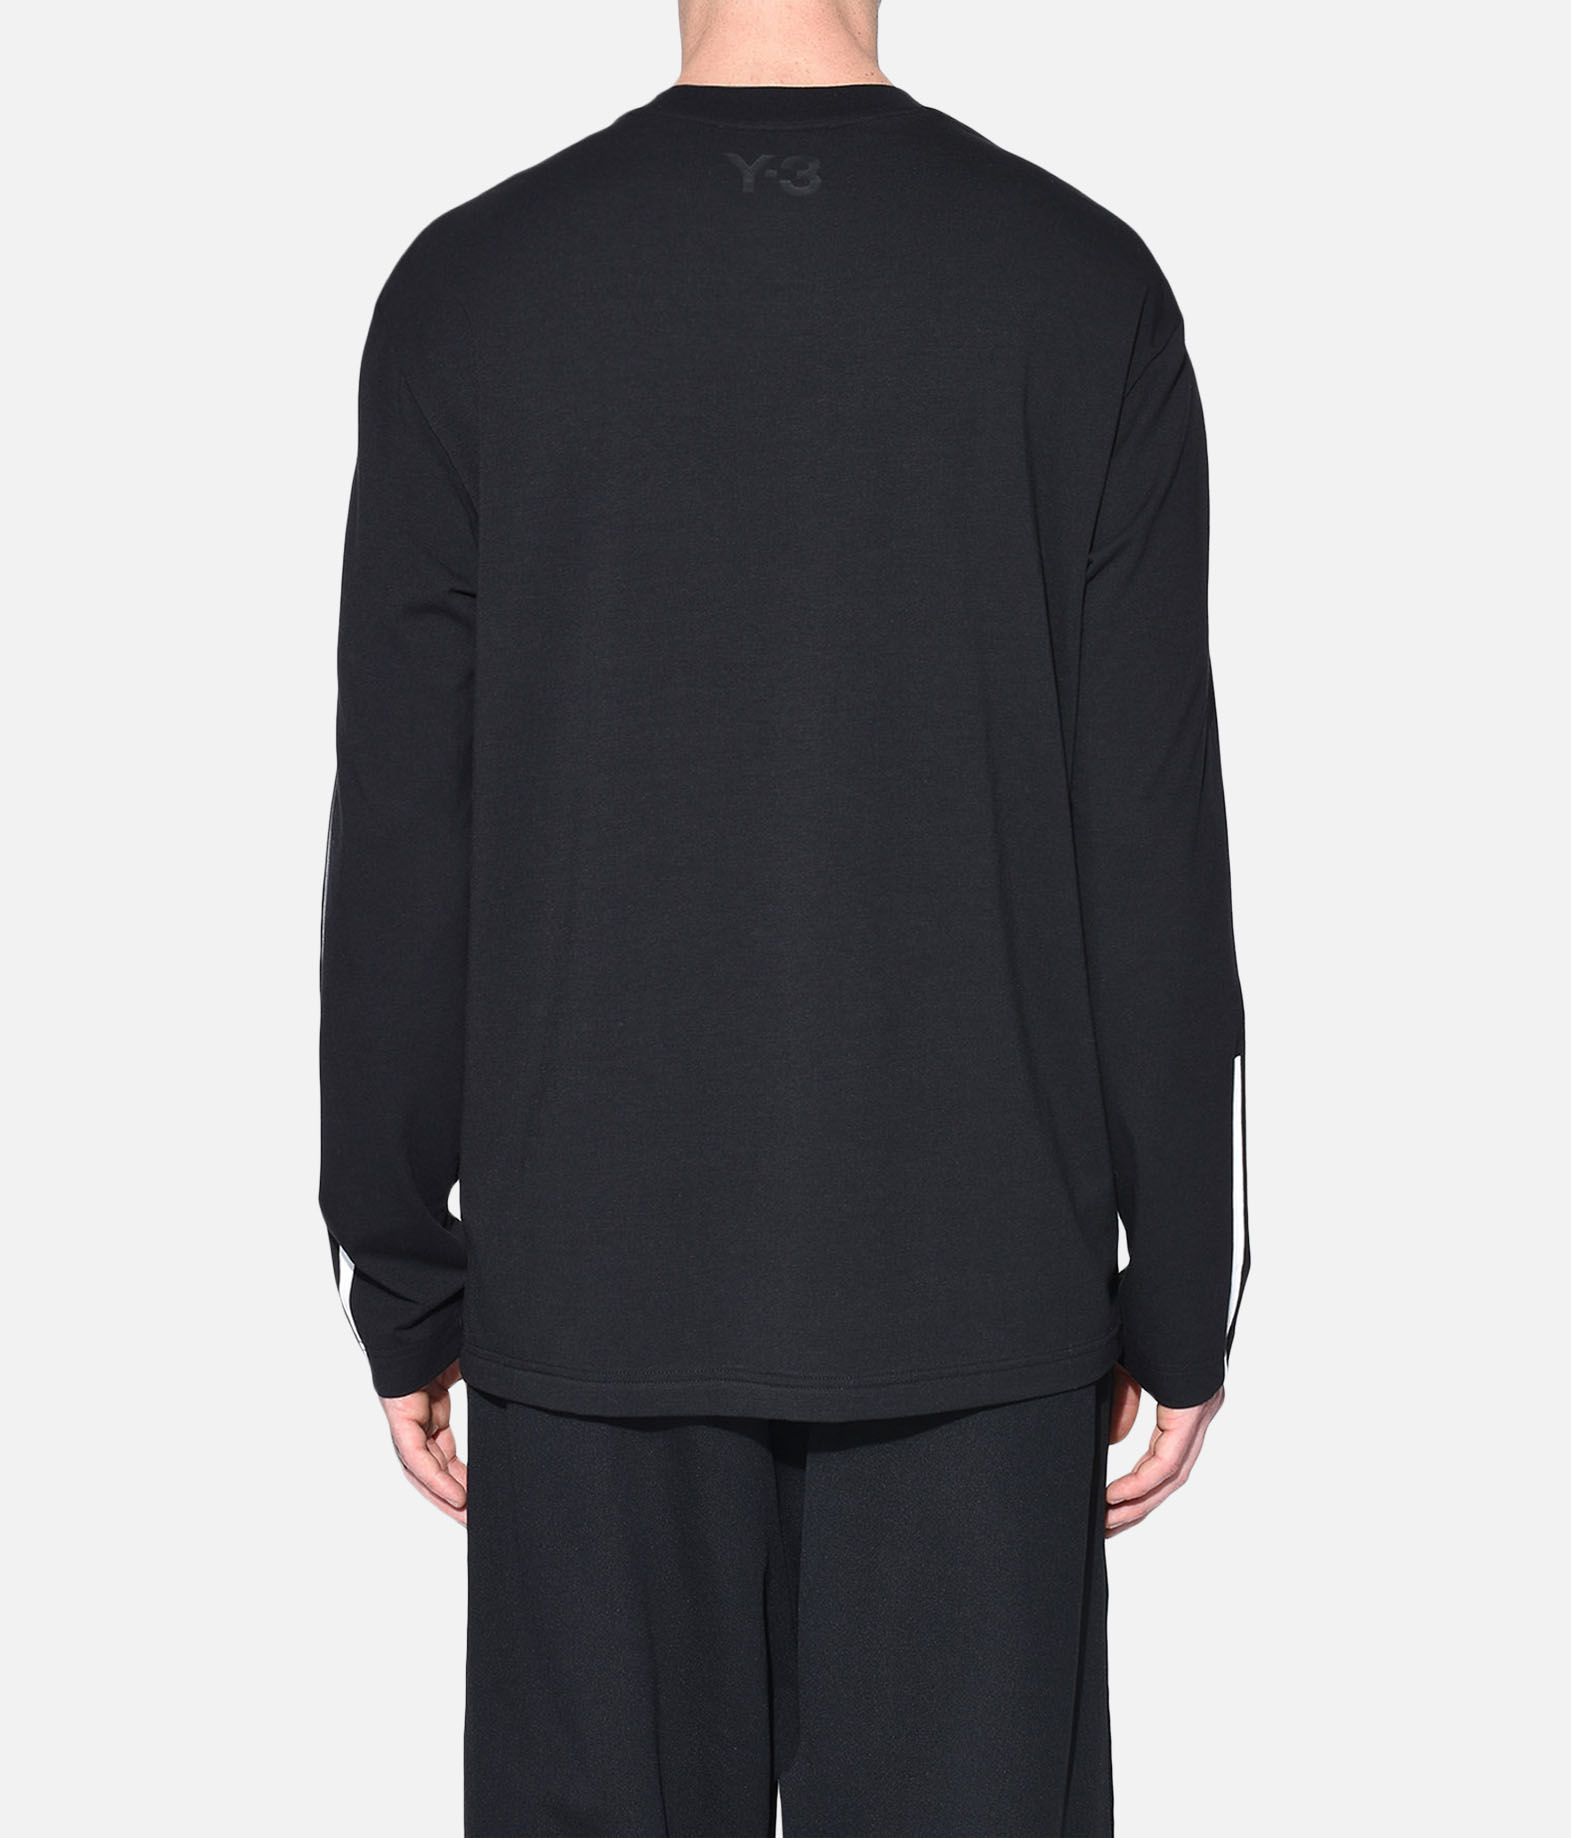 Y-3 Y-3 3-Stripes Tee Long sleeve t-shirt Man d